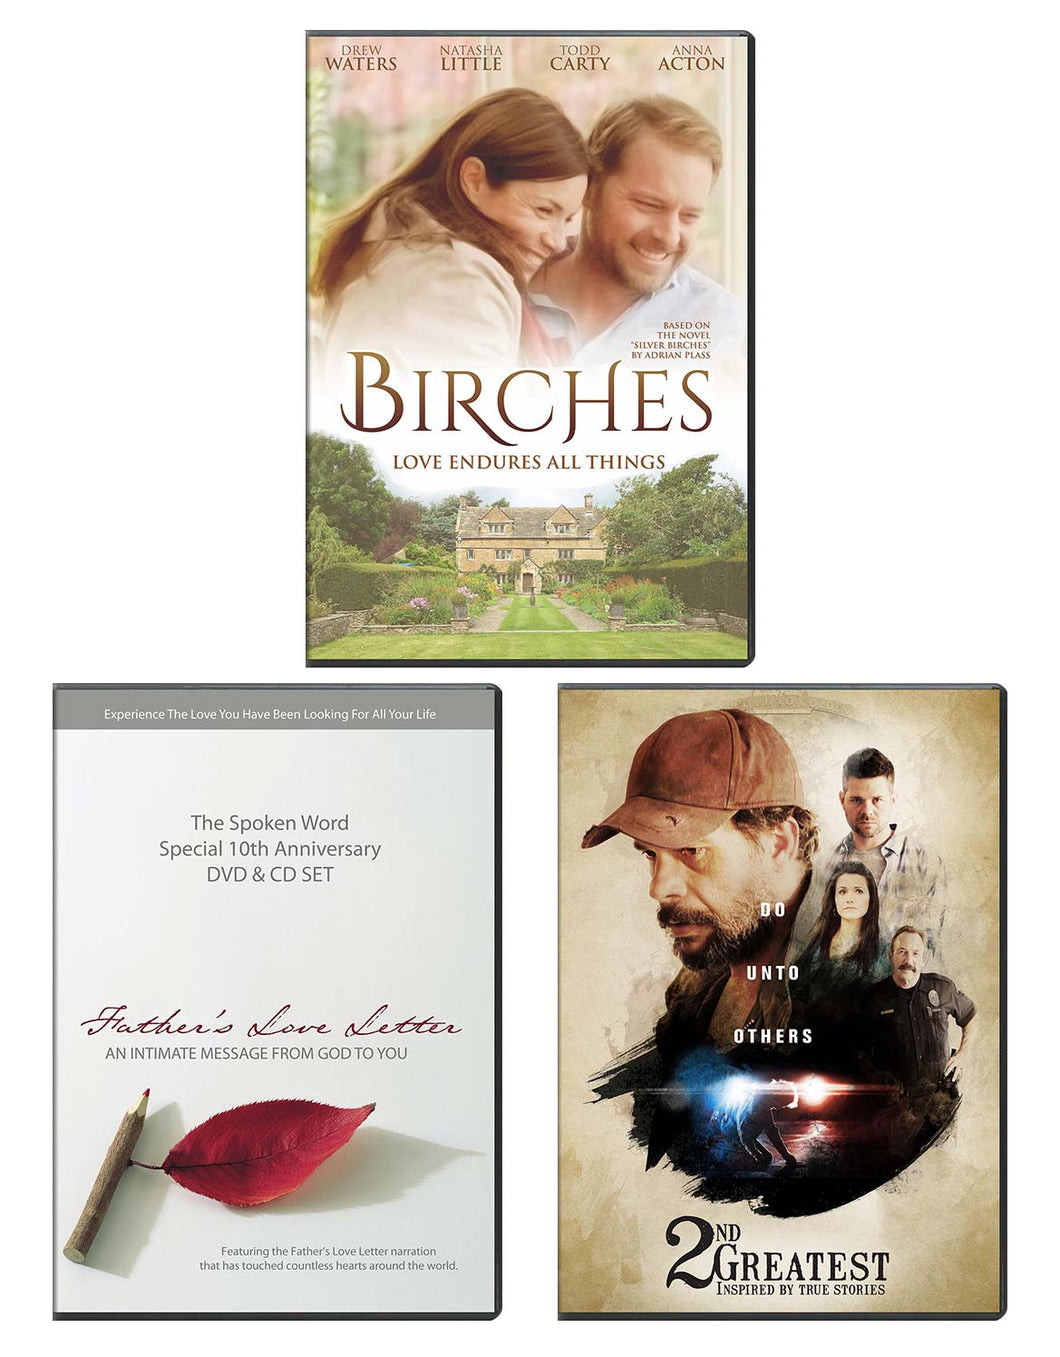 Birches, Father's Love Letter, & 2nd Greatest - DVD 3-Pack